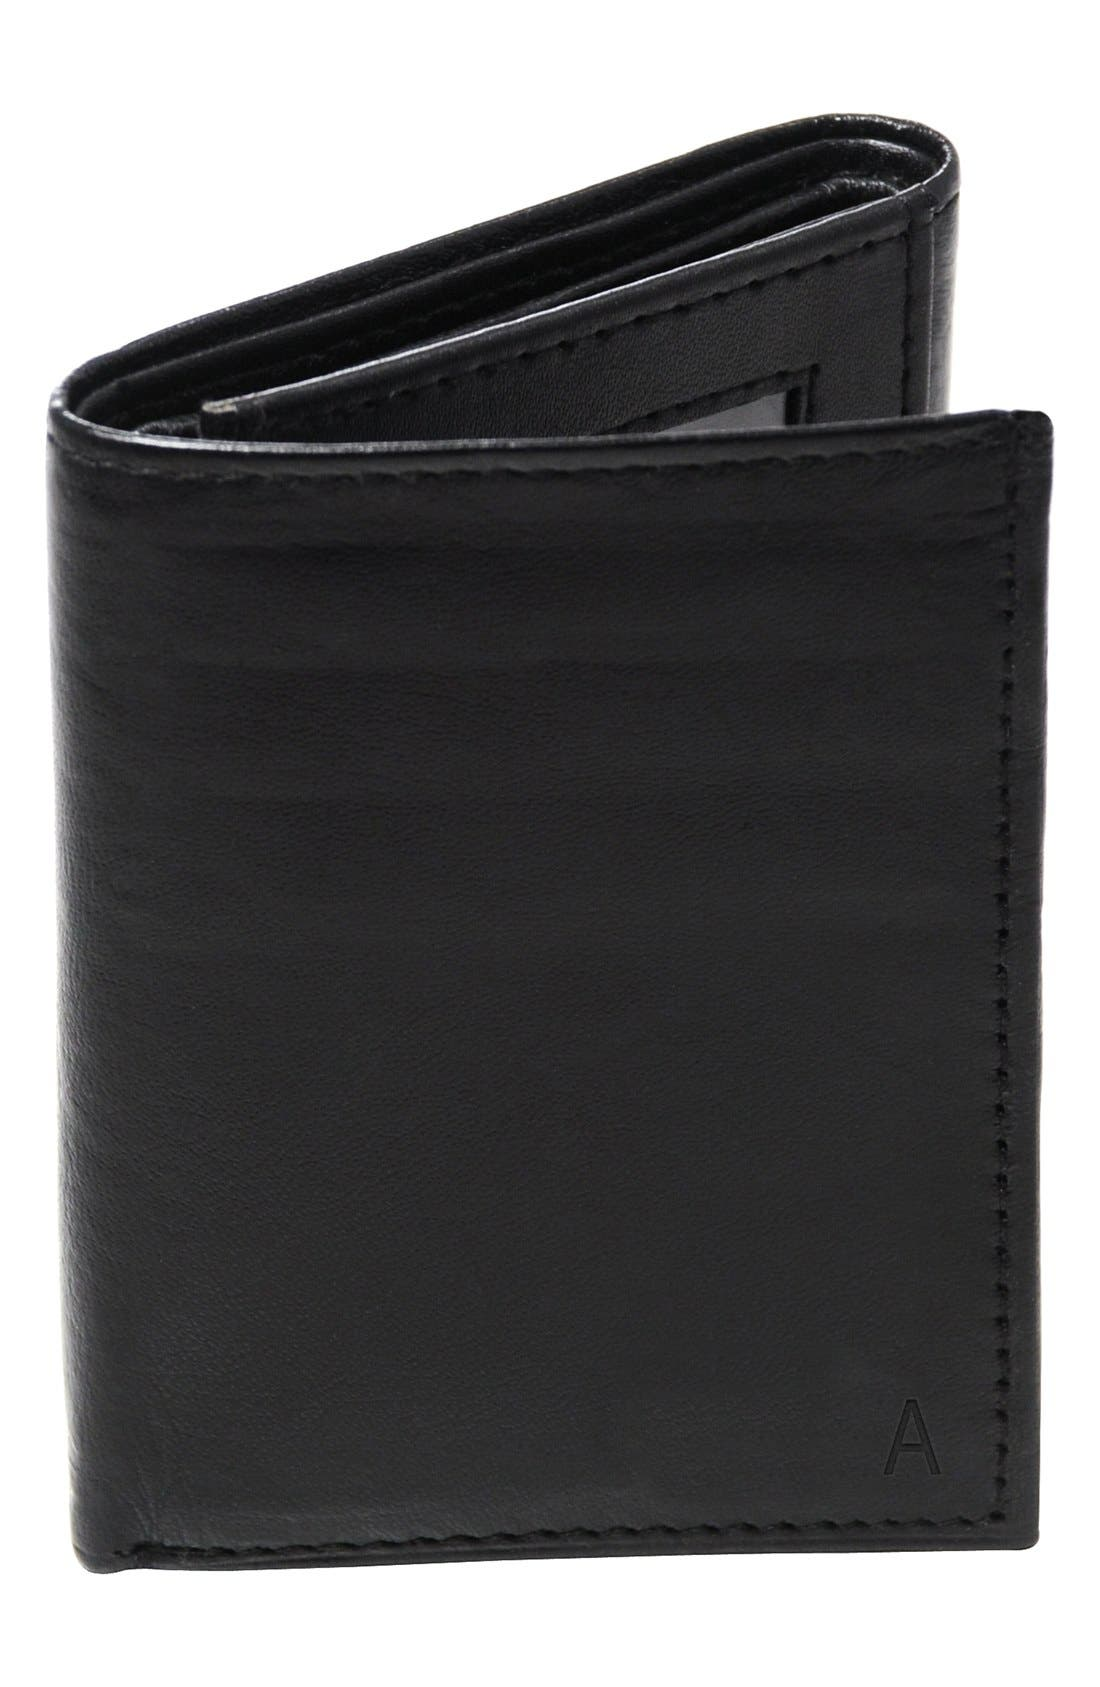 Cathy's Concepts 'Oxford' Monogram Leather Trifold Wallet